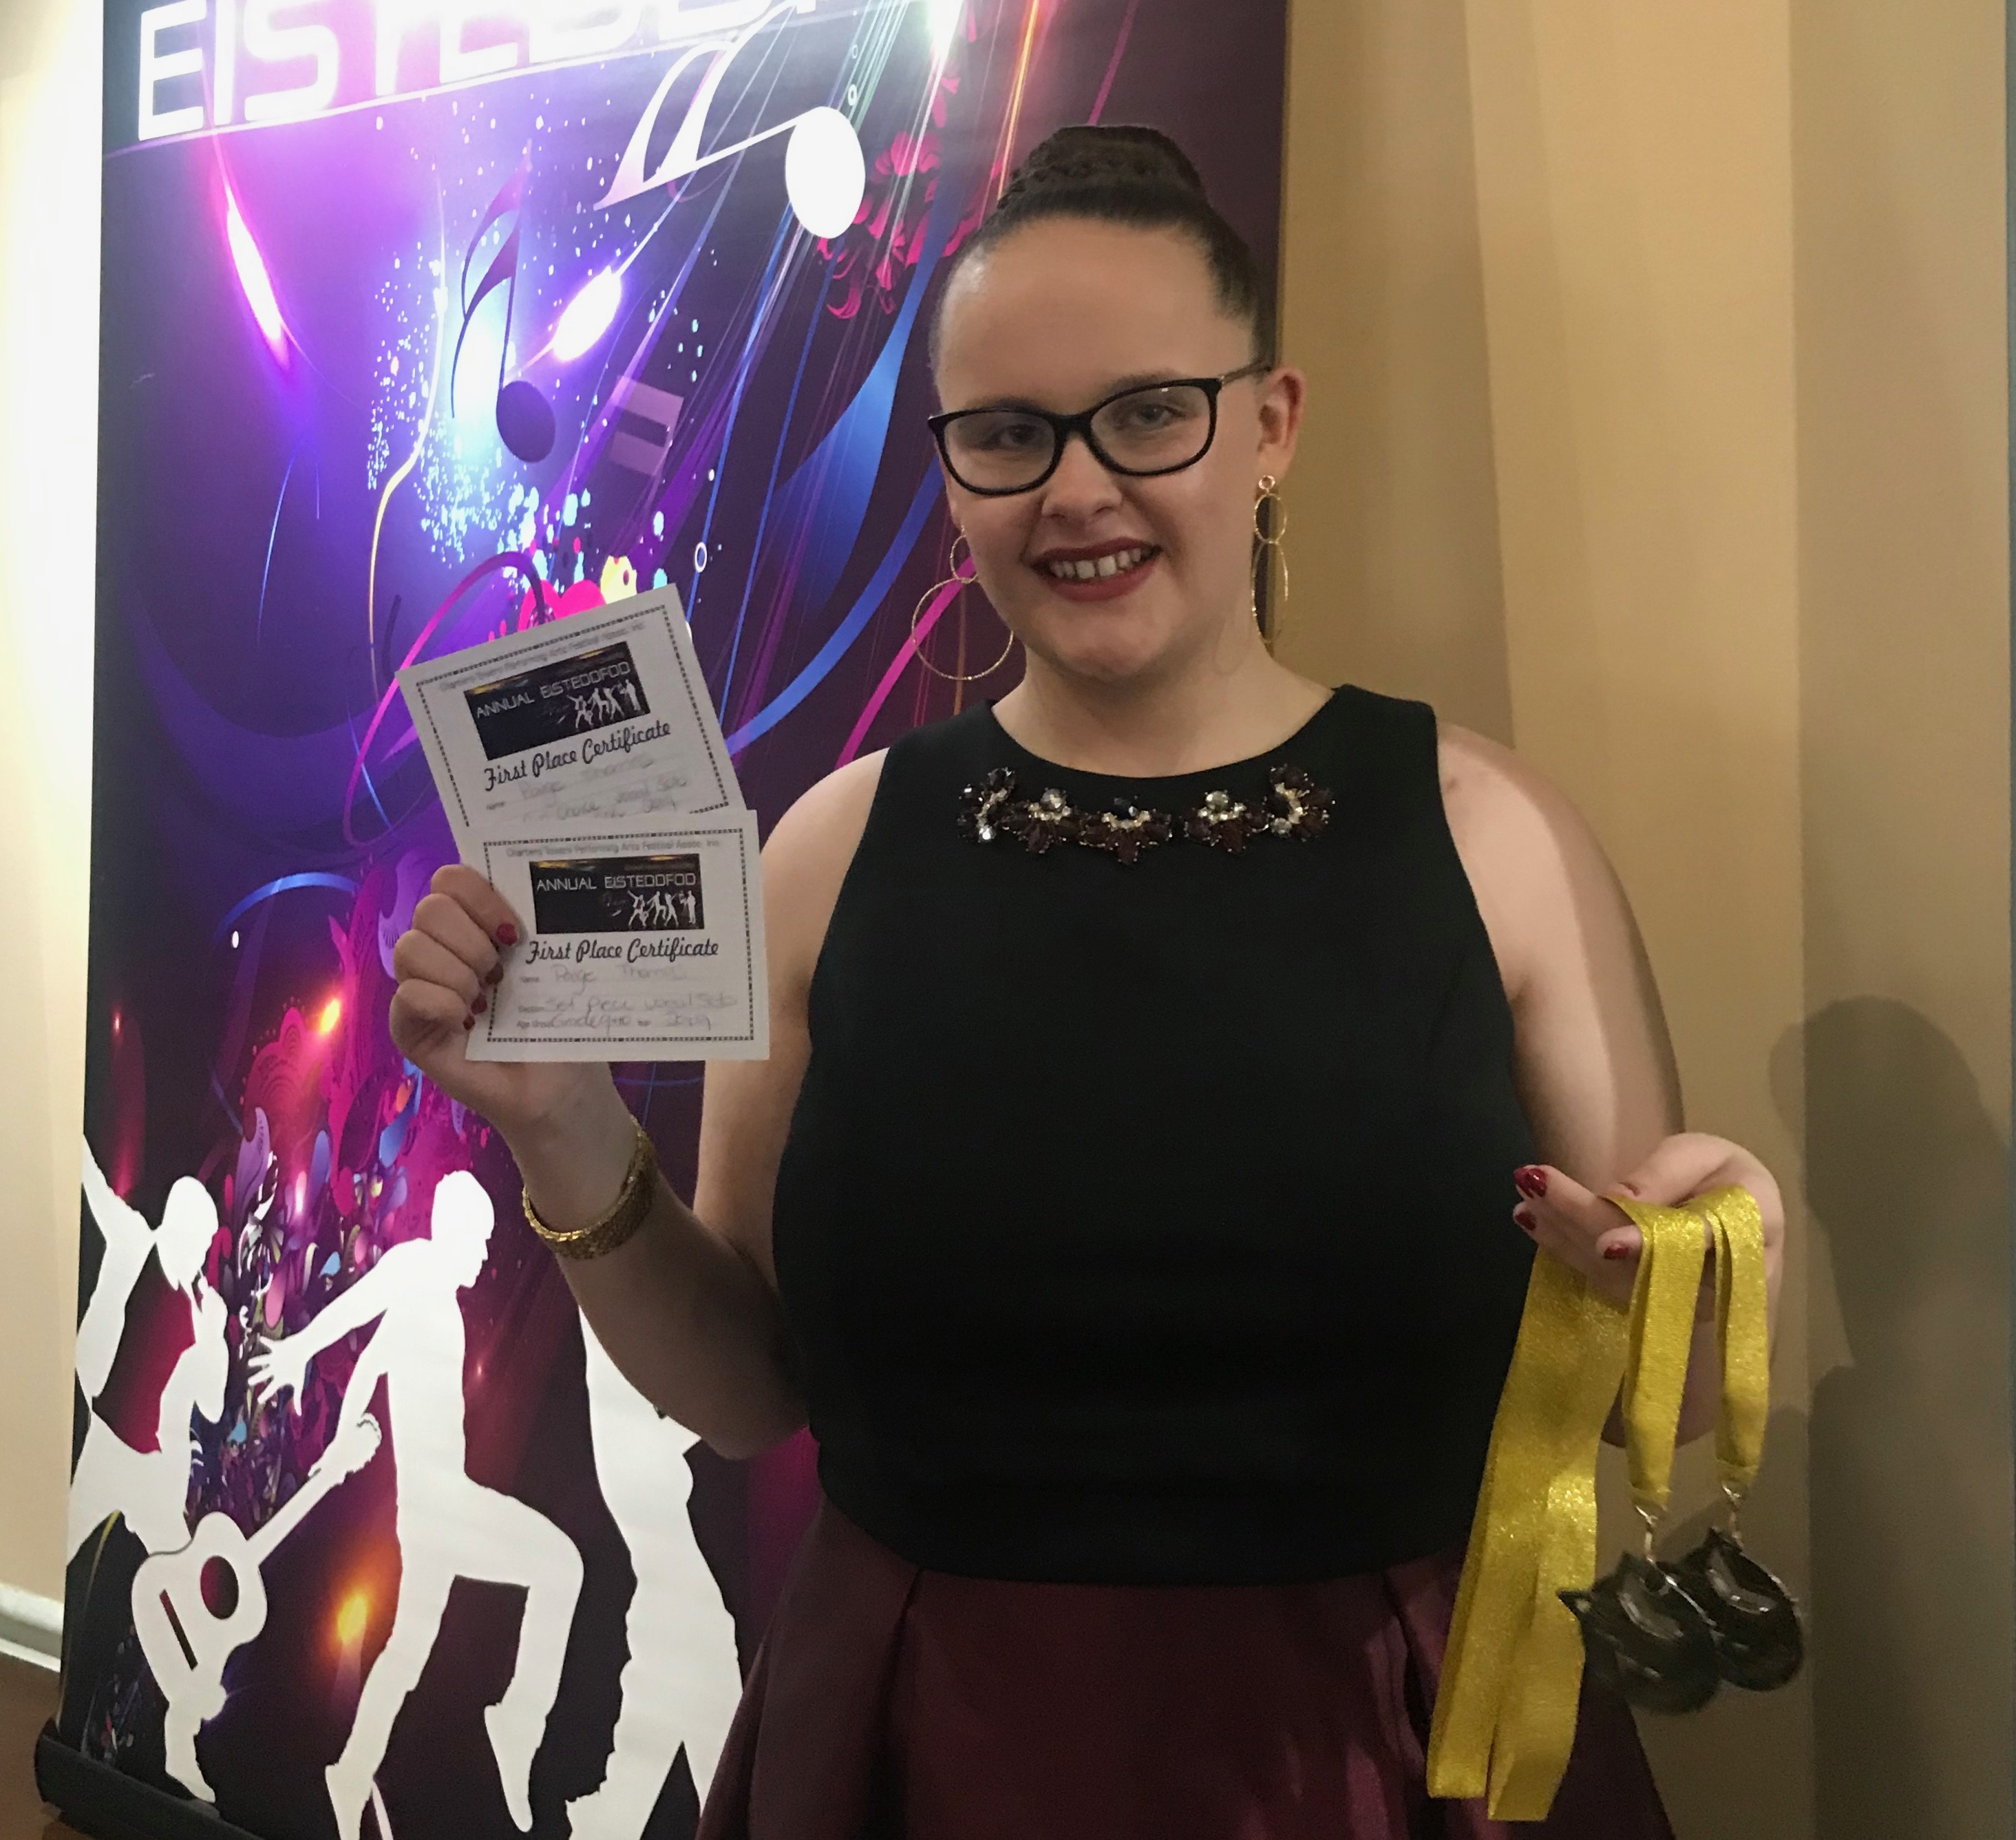 Student Paige Thomas performed at the 2019 EKKA, and ranked 1st place in Eisteddfod!